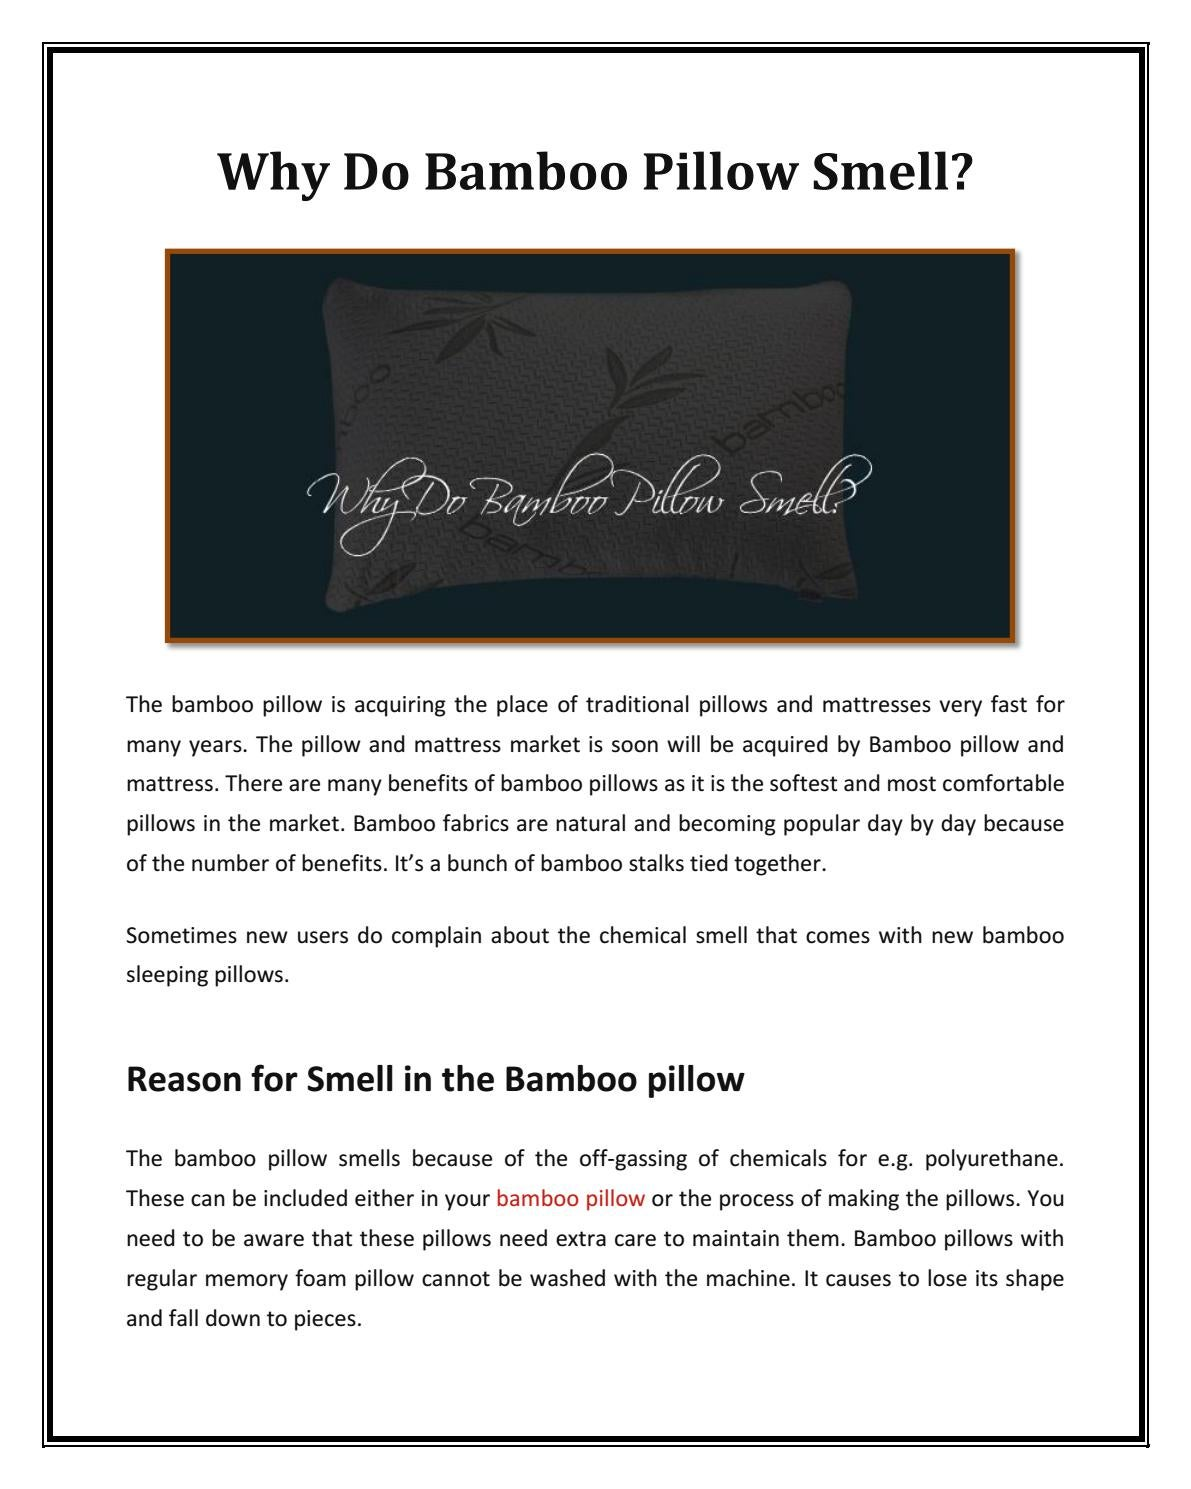 why do bamboo pillow smell by